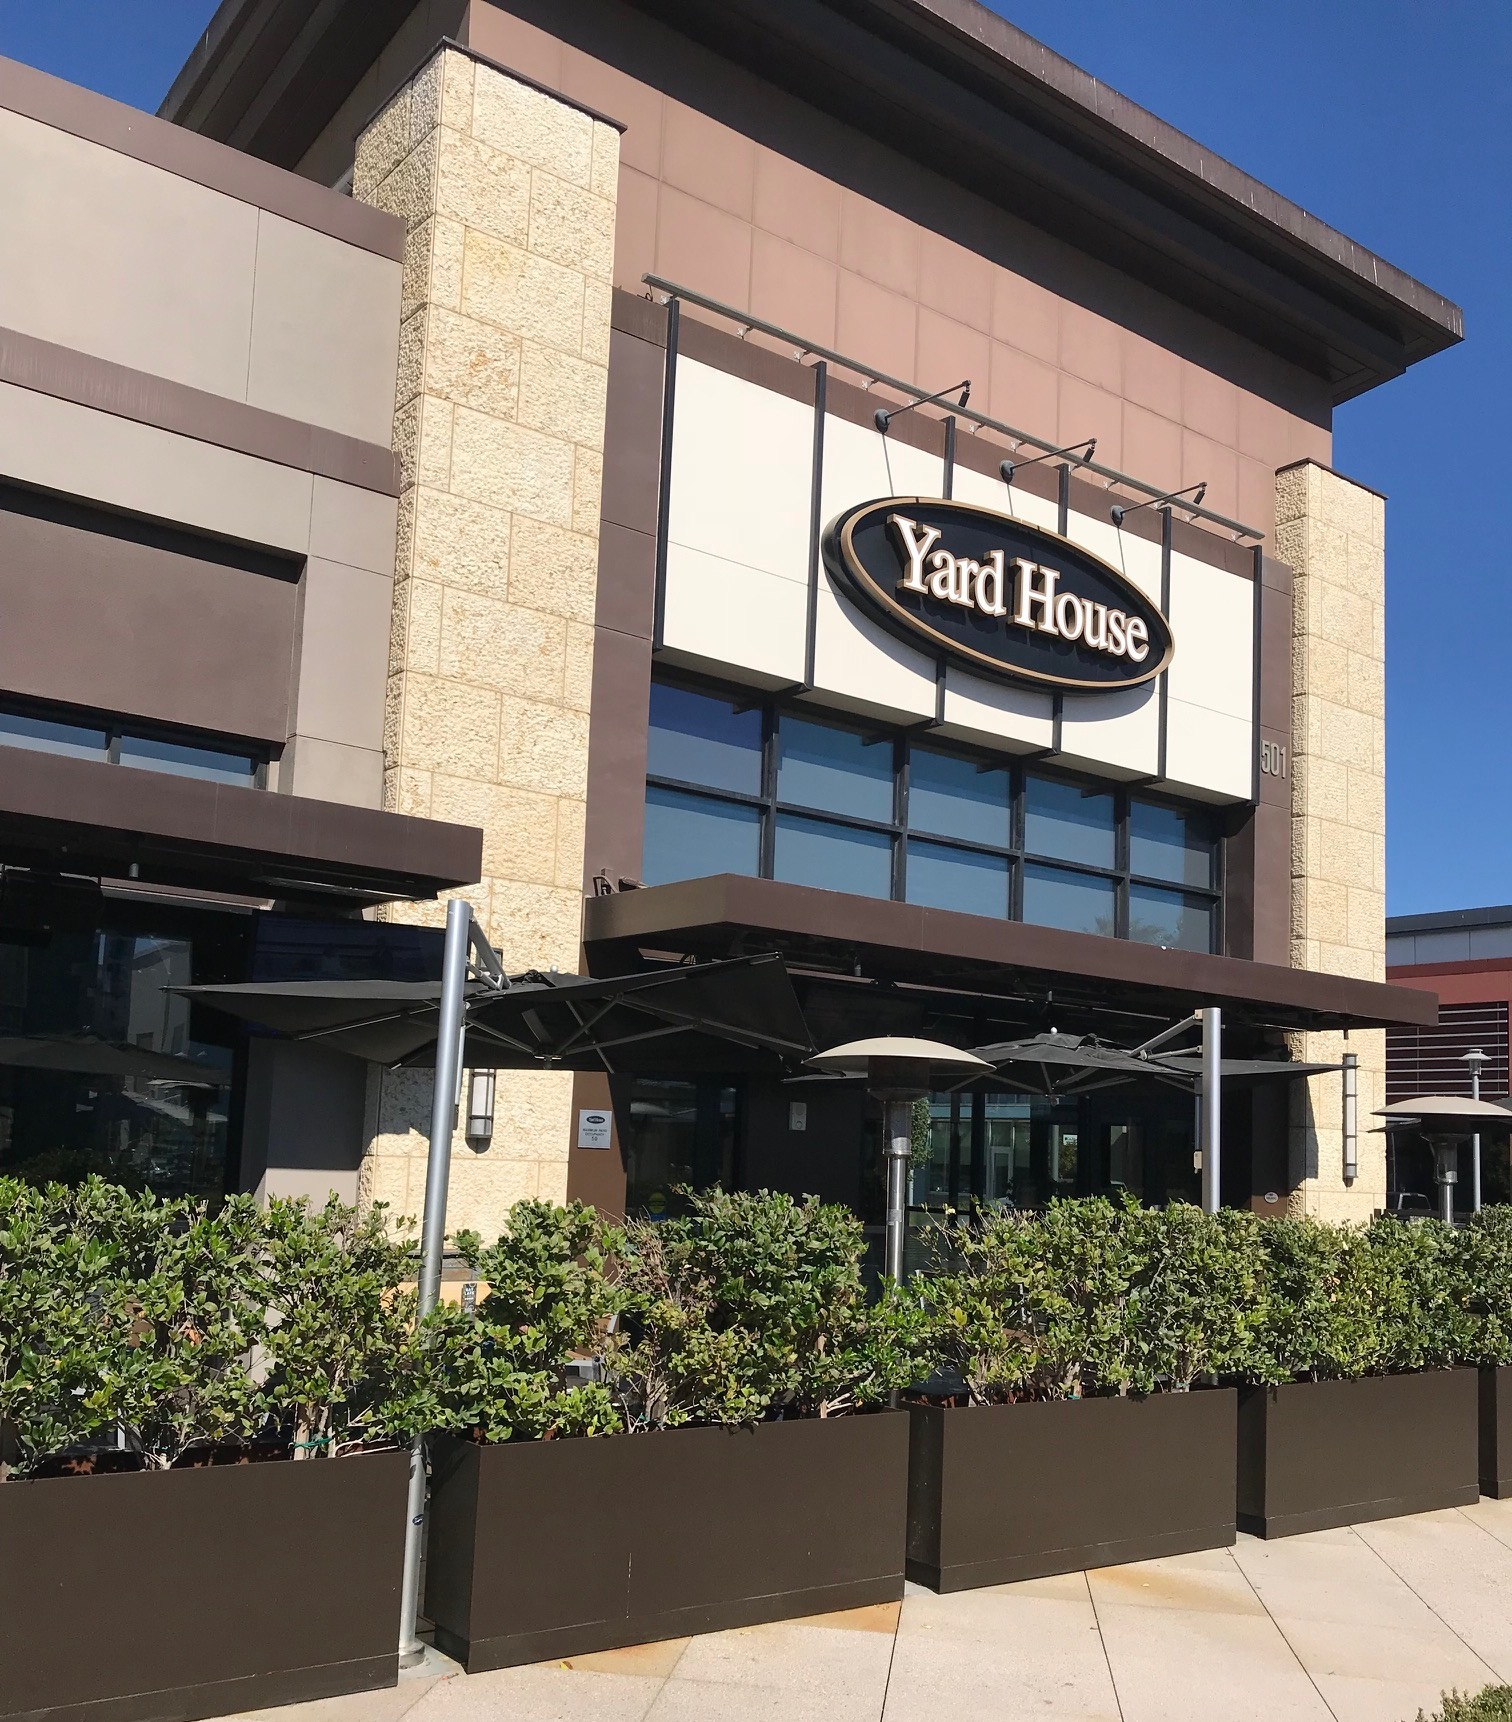 Yard House - exterior and patio.jpg